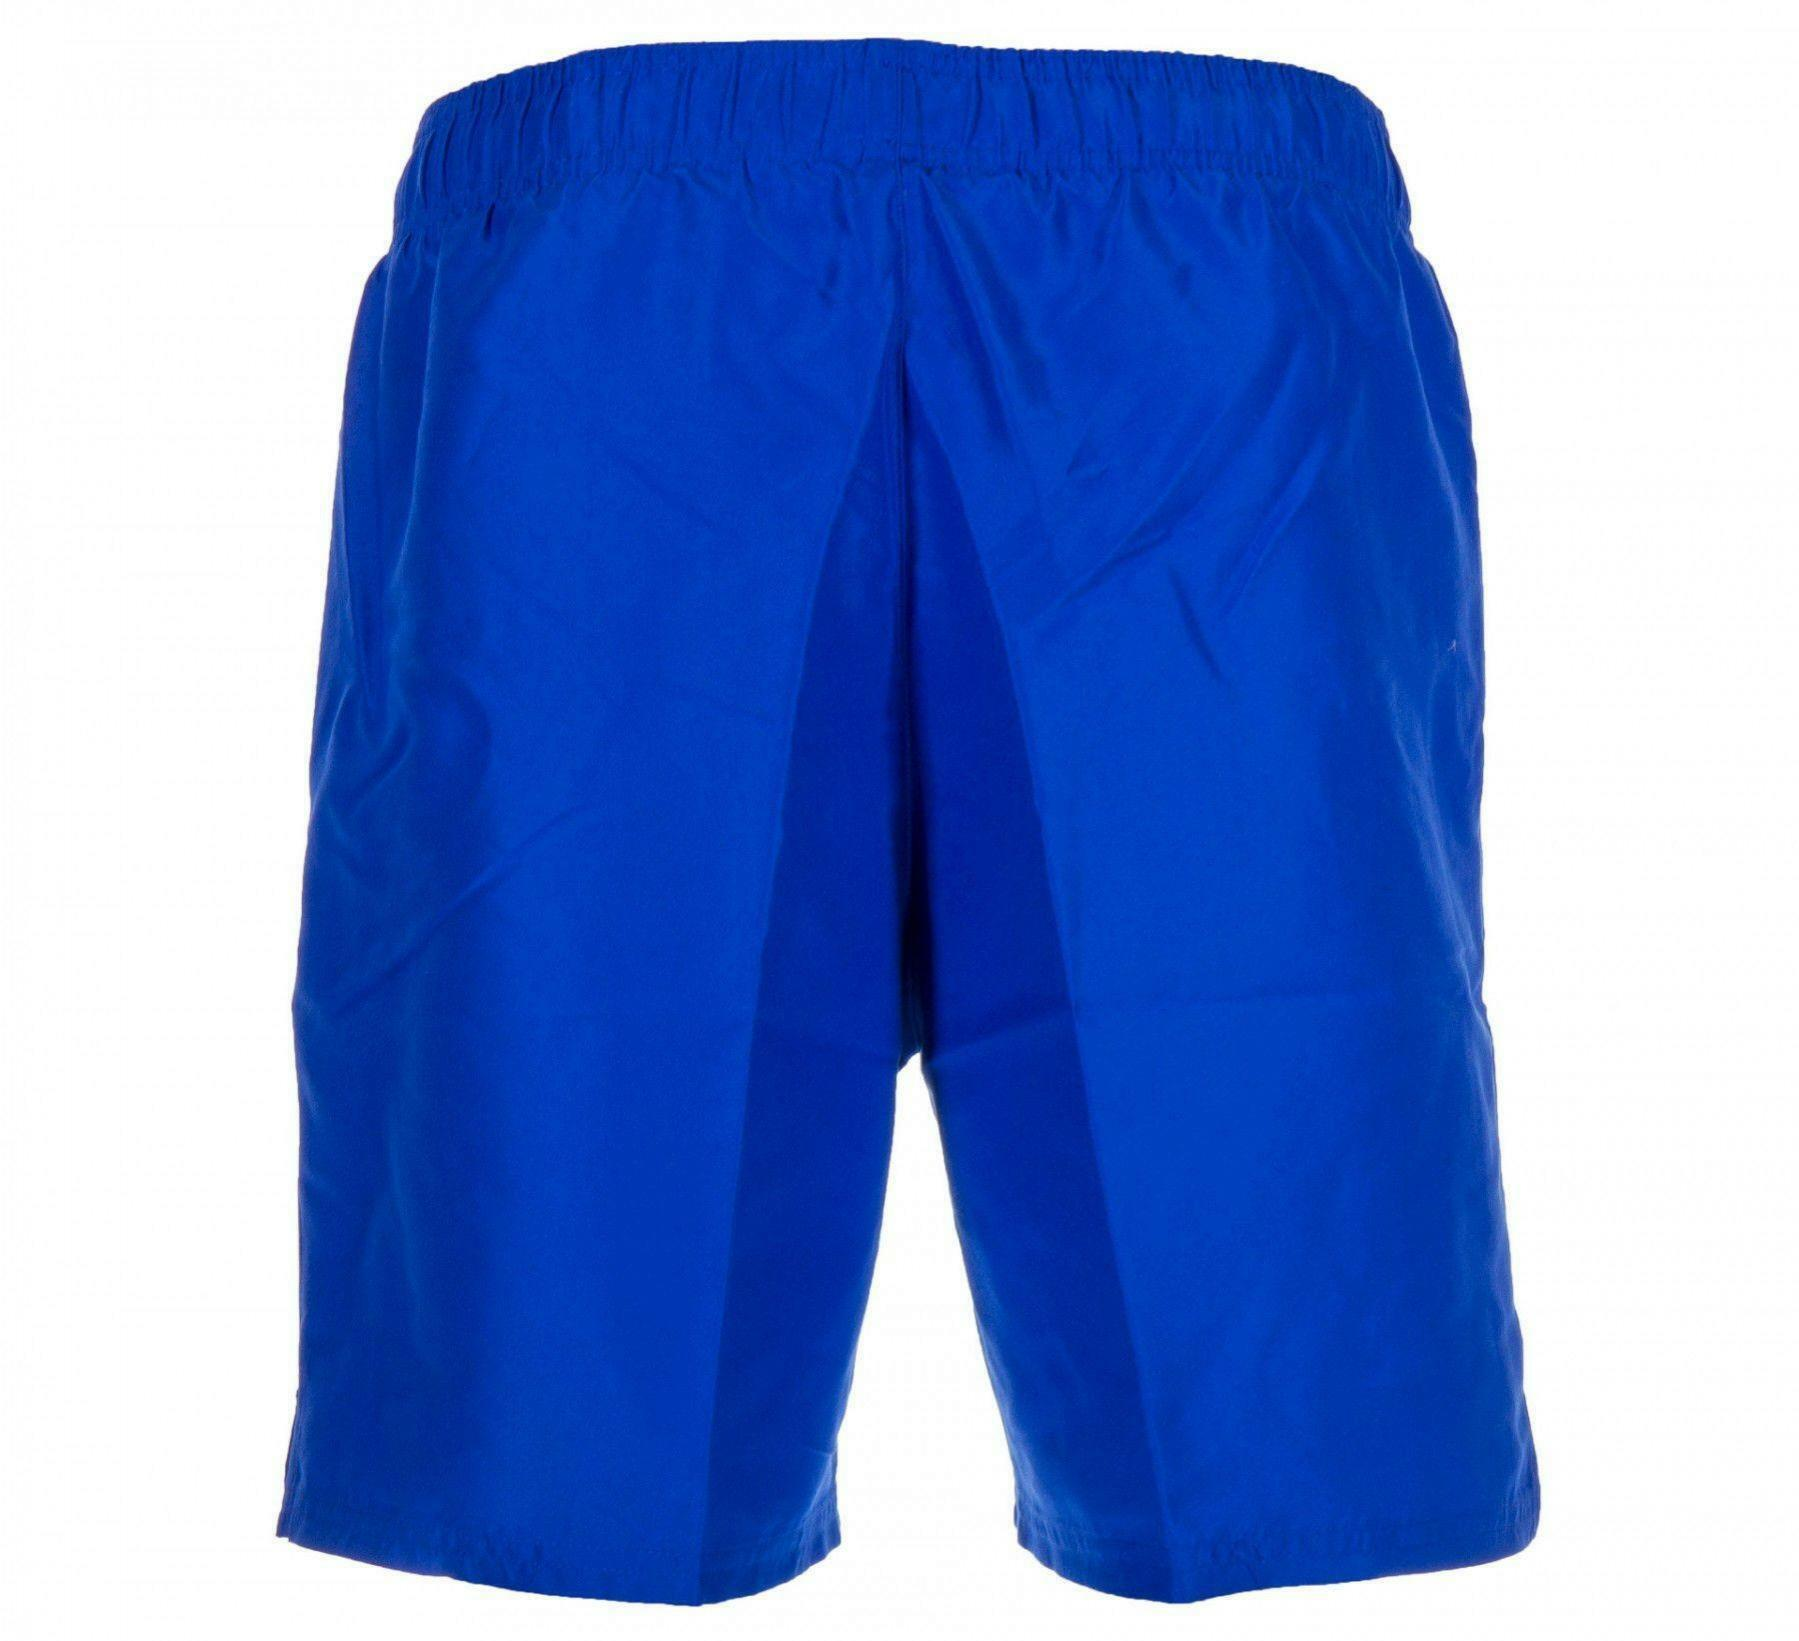 nike nike 7 volley short costume uomo blu ness8510-416